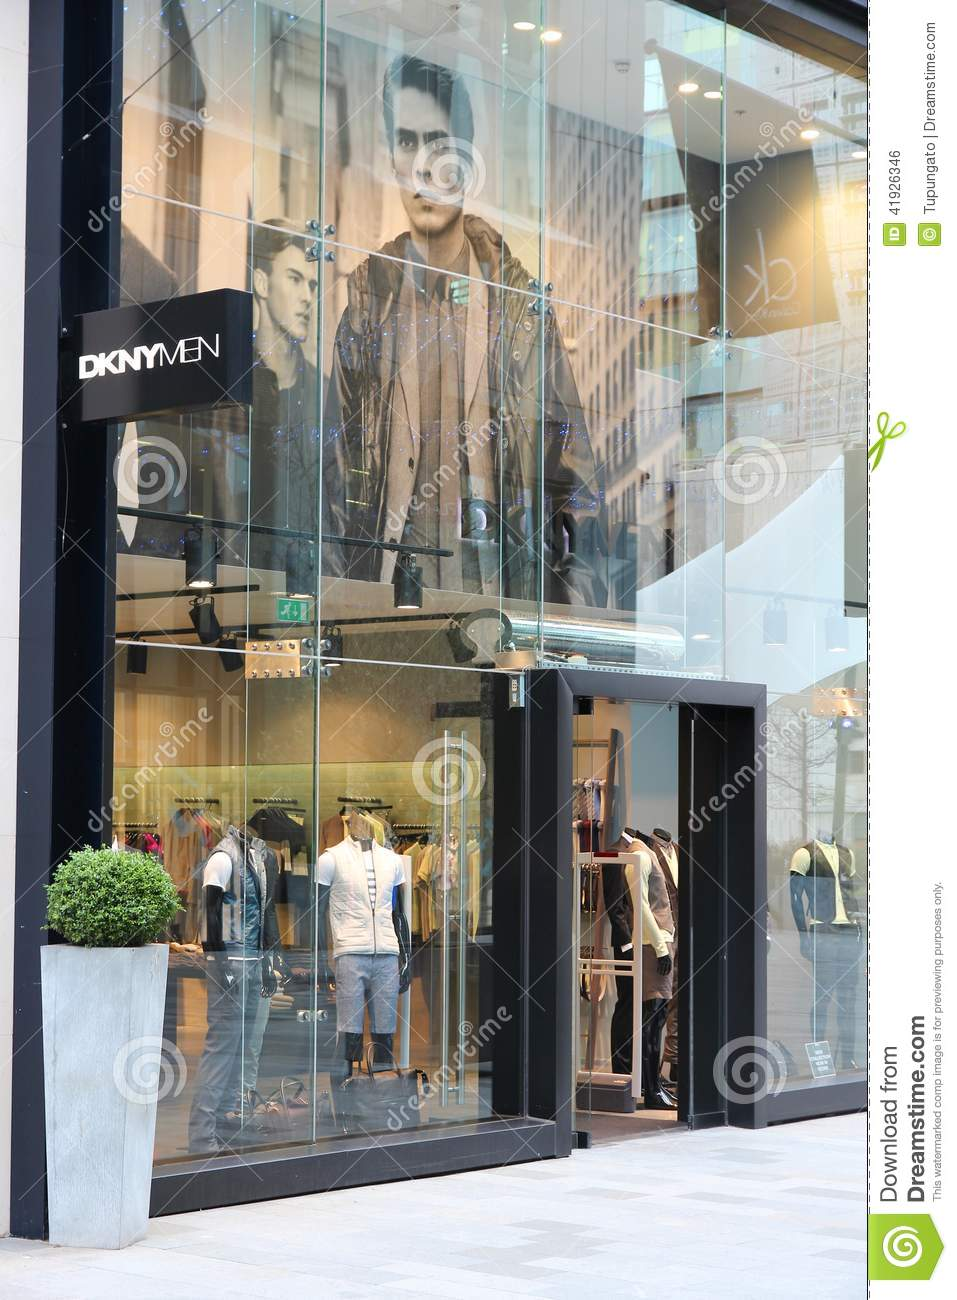 Clothing stores manchester